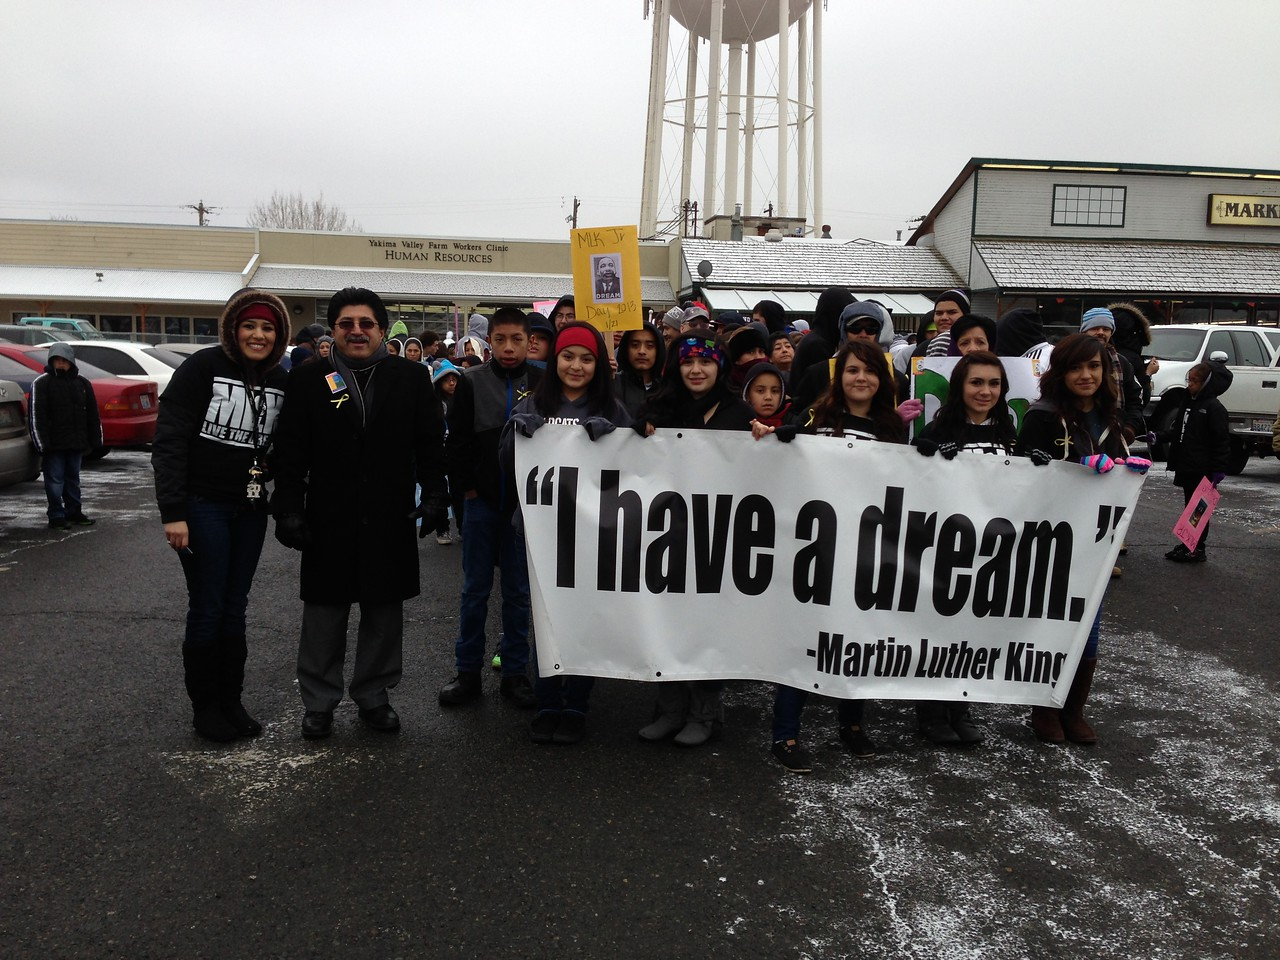 Groups prepare to march in a parade during Martin Luther King Day in Toppenish, WA.